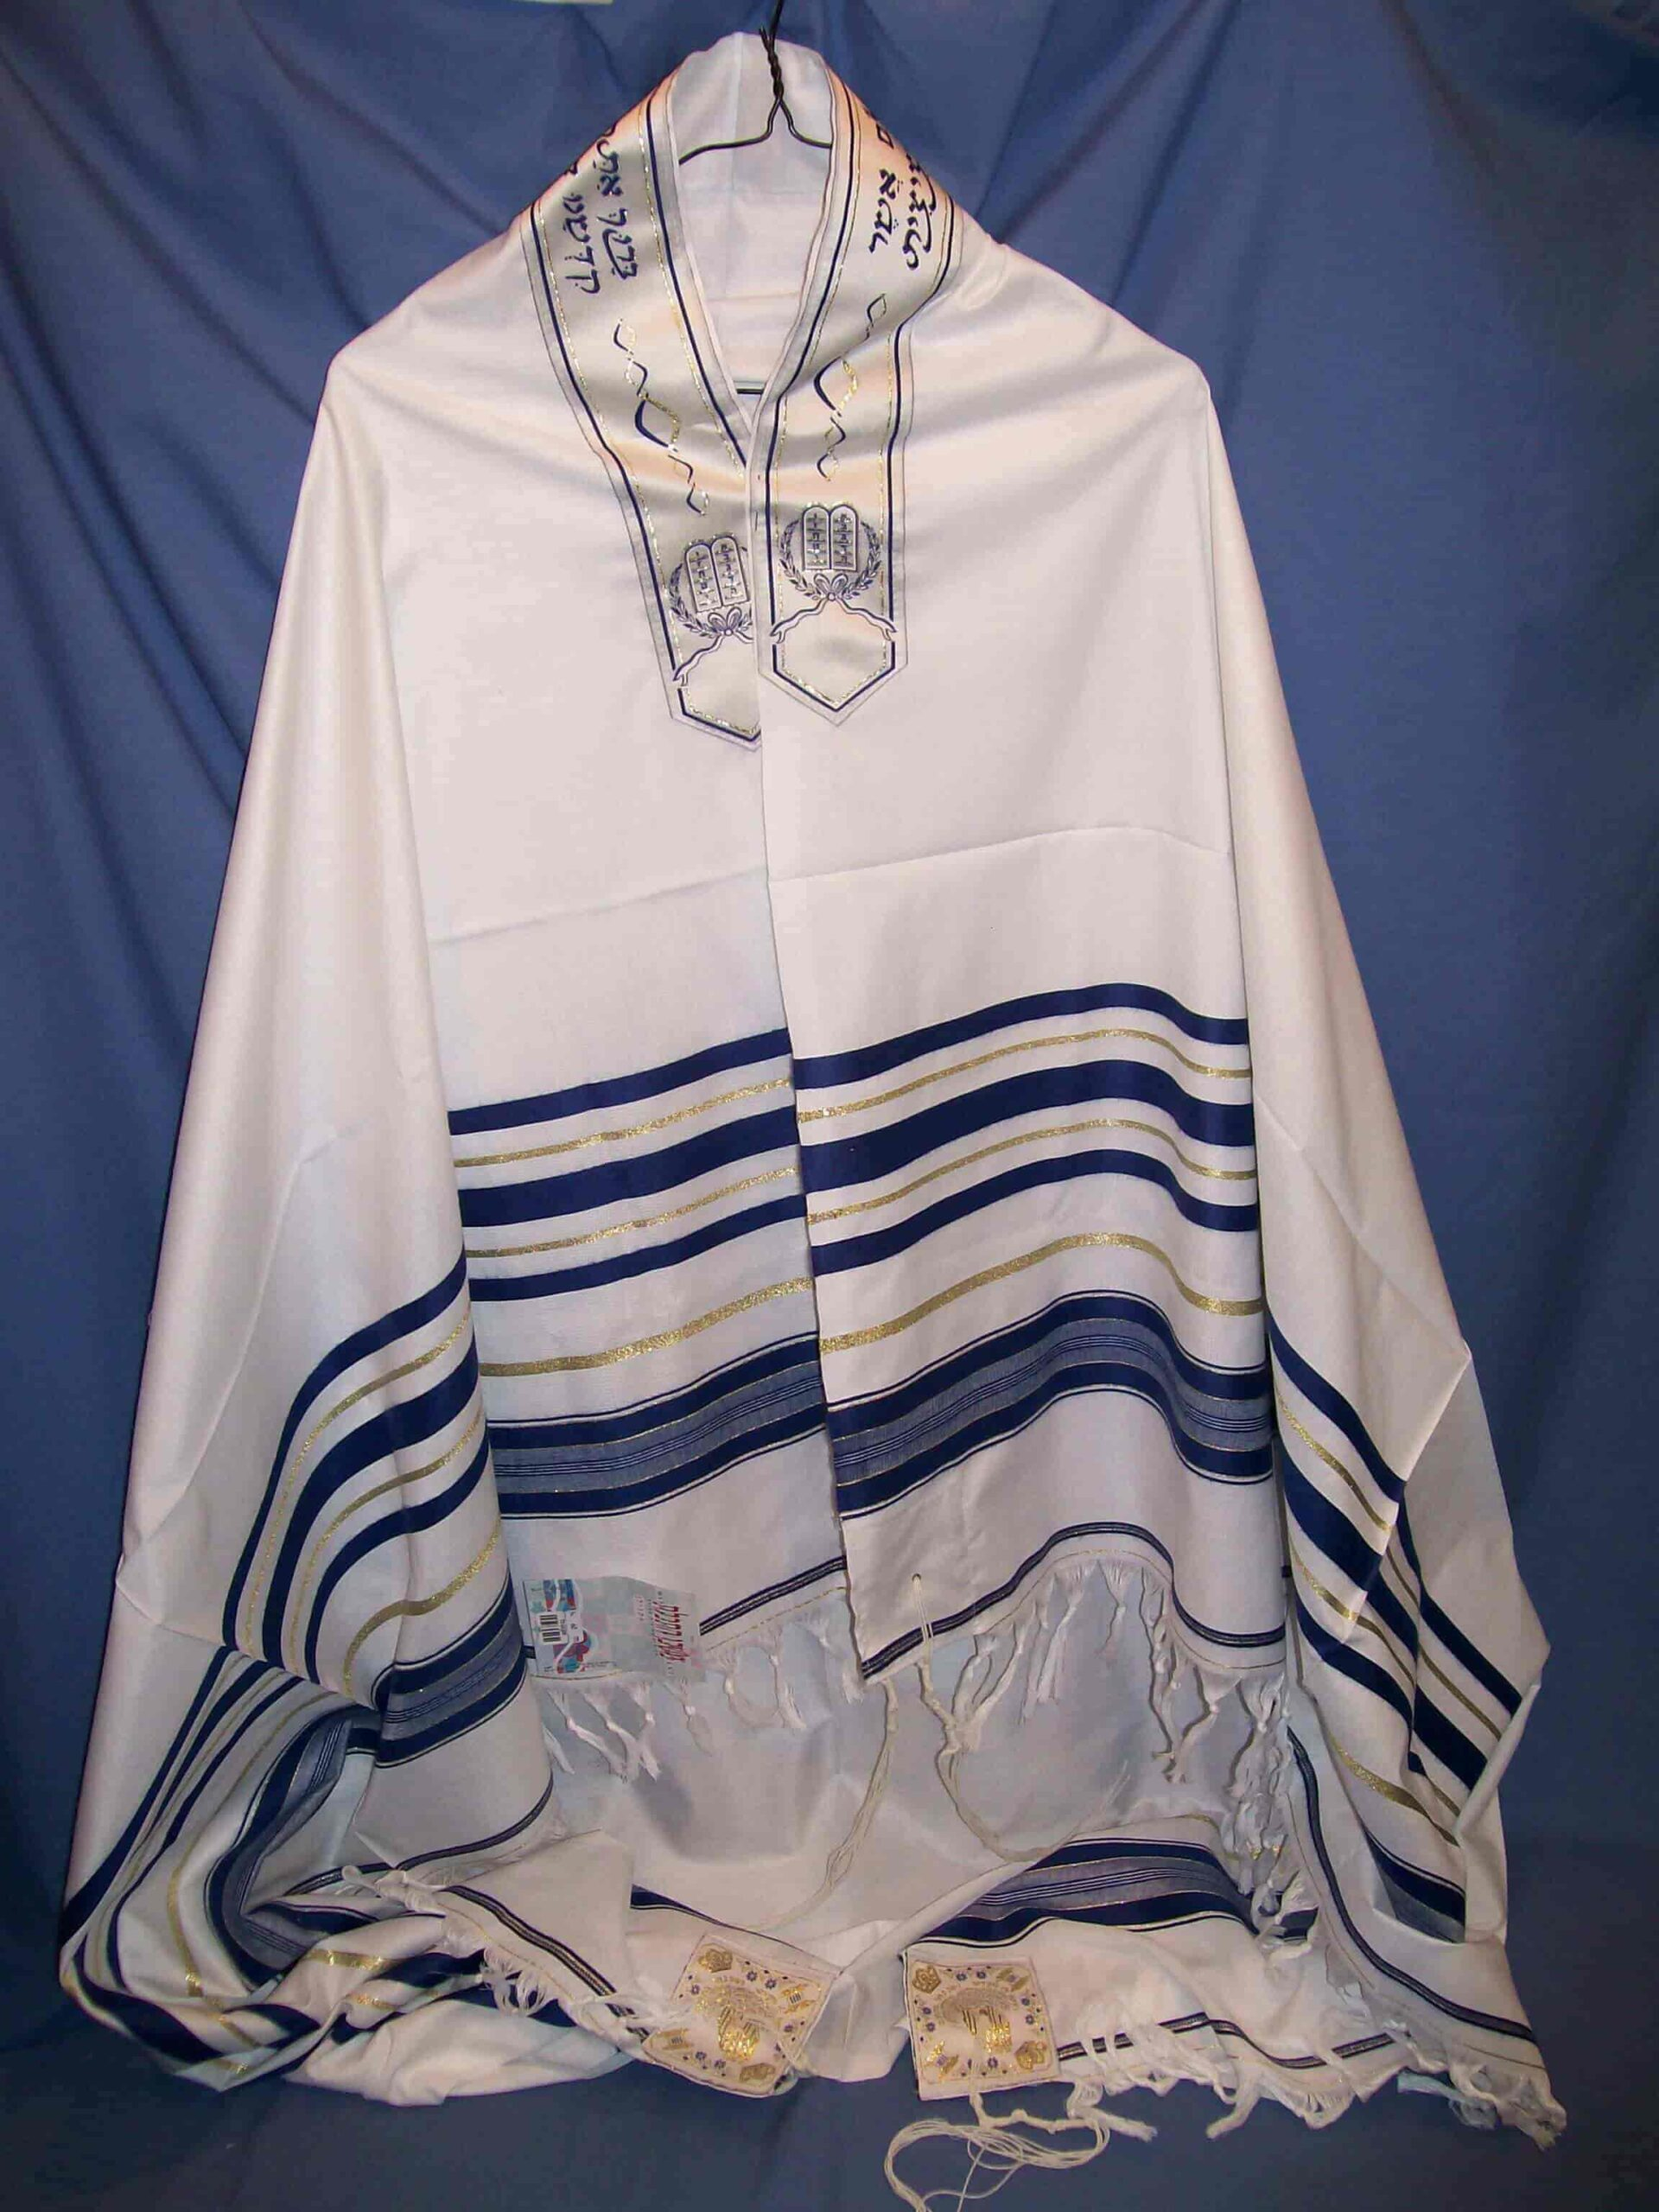 Israeli Products Online